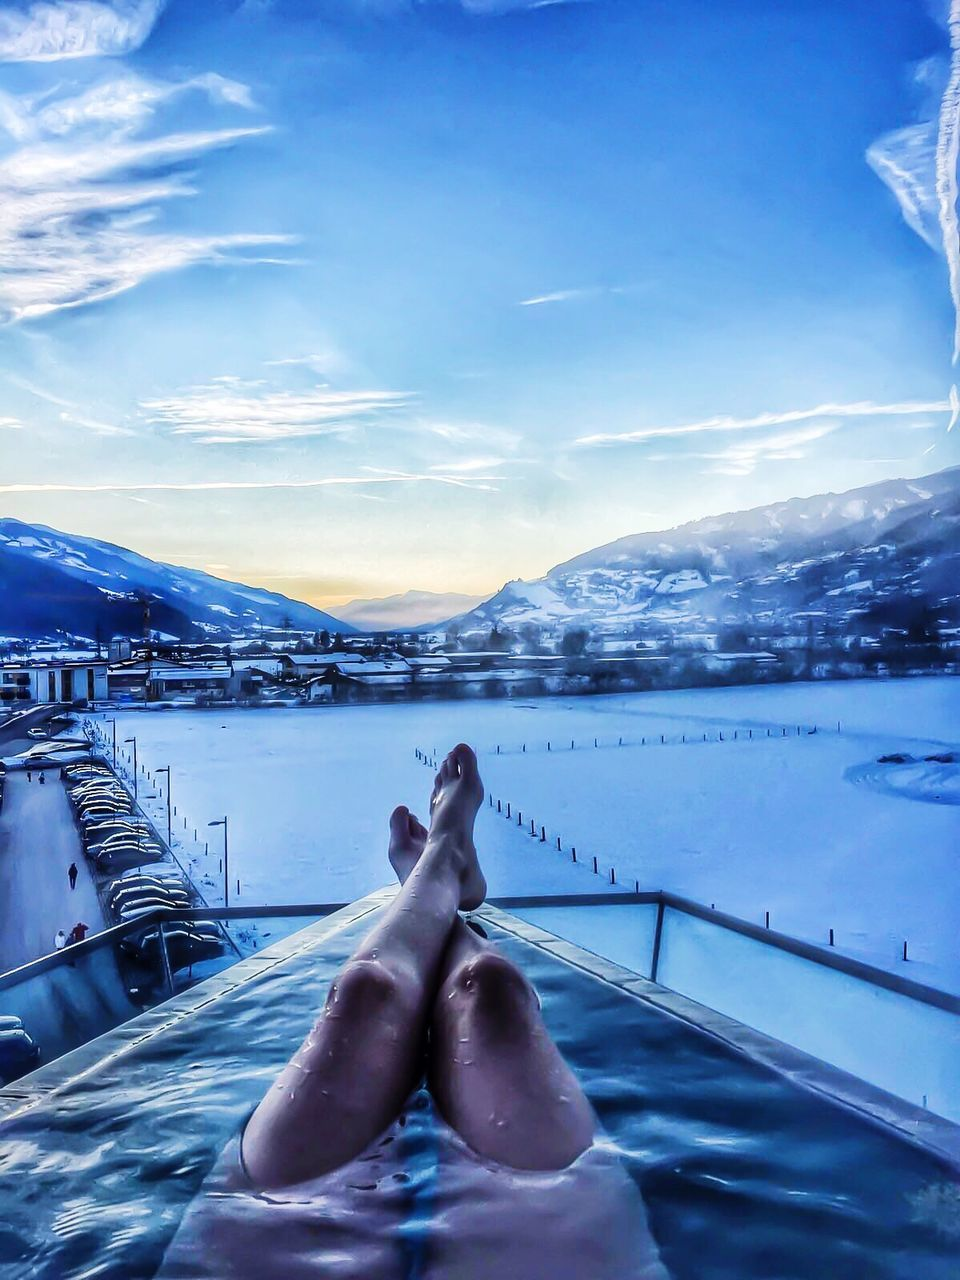 human leg, water, cloud - sky, low section, sky, one person, outdoors, mountain, real people, human body part, beauty in nature, swimming pool, day, nature, relaxation, lifestyles, scenics, women, nautical vessel, people